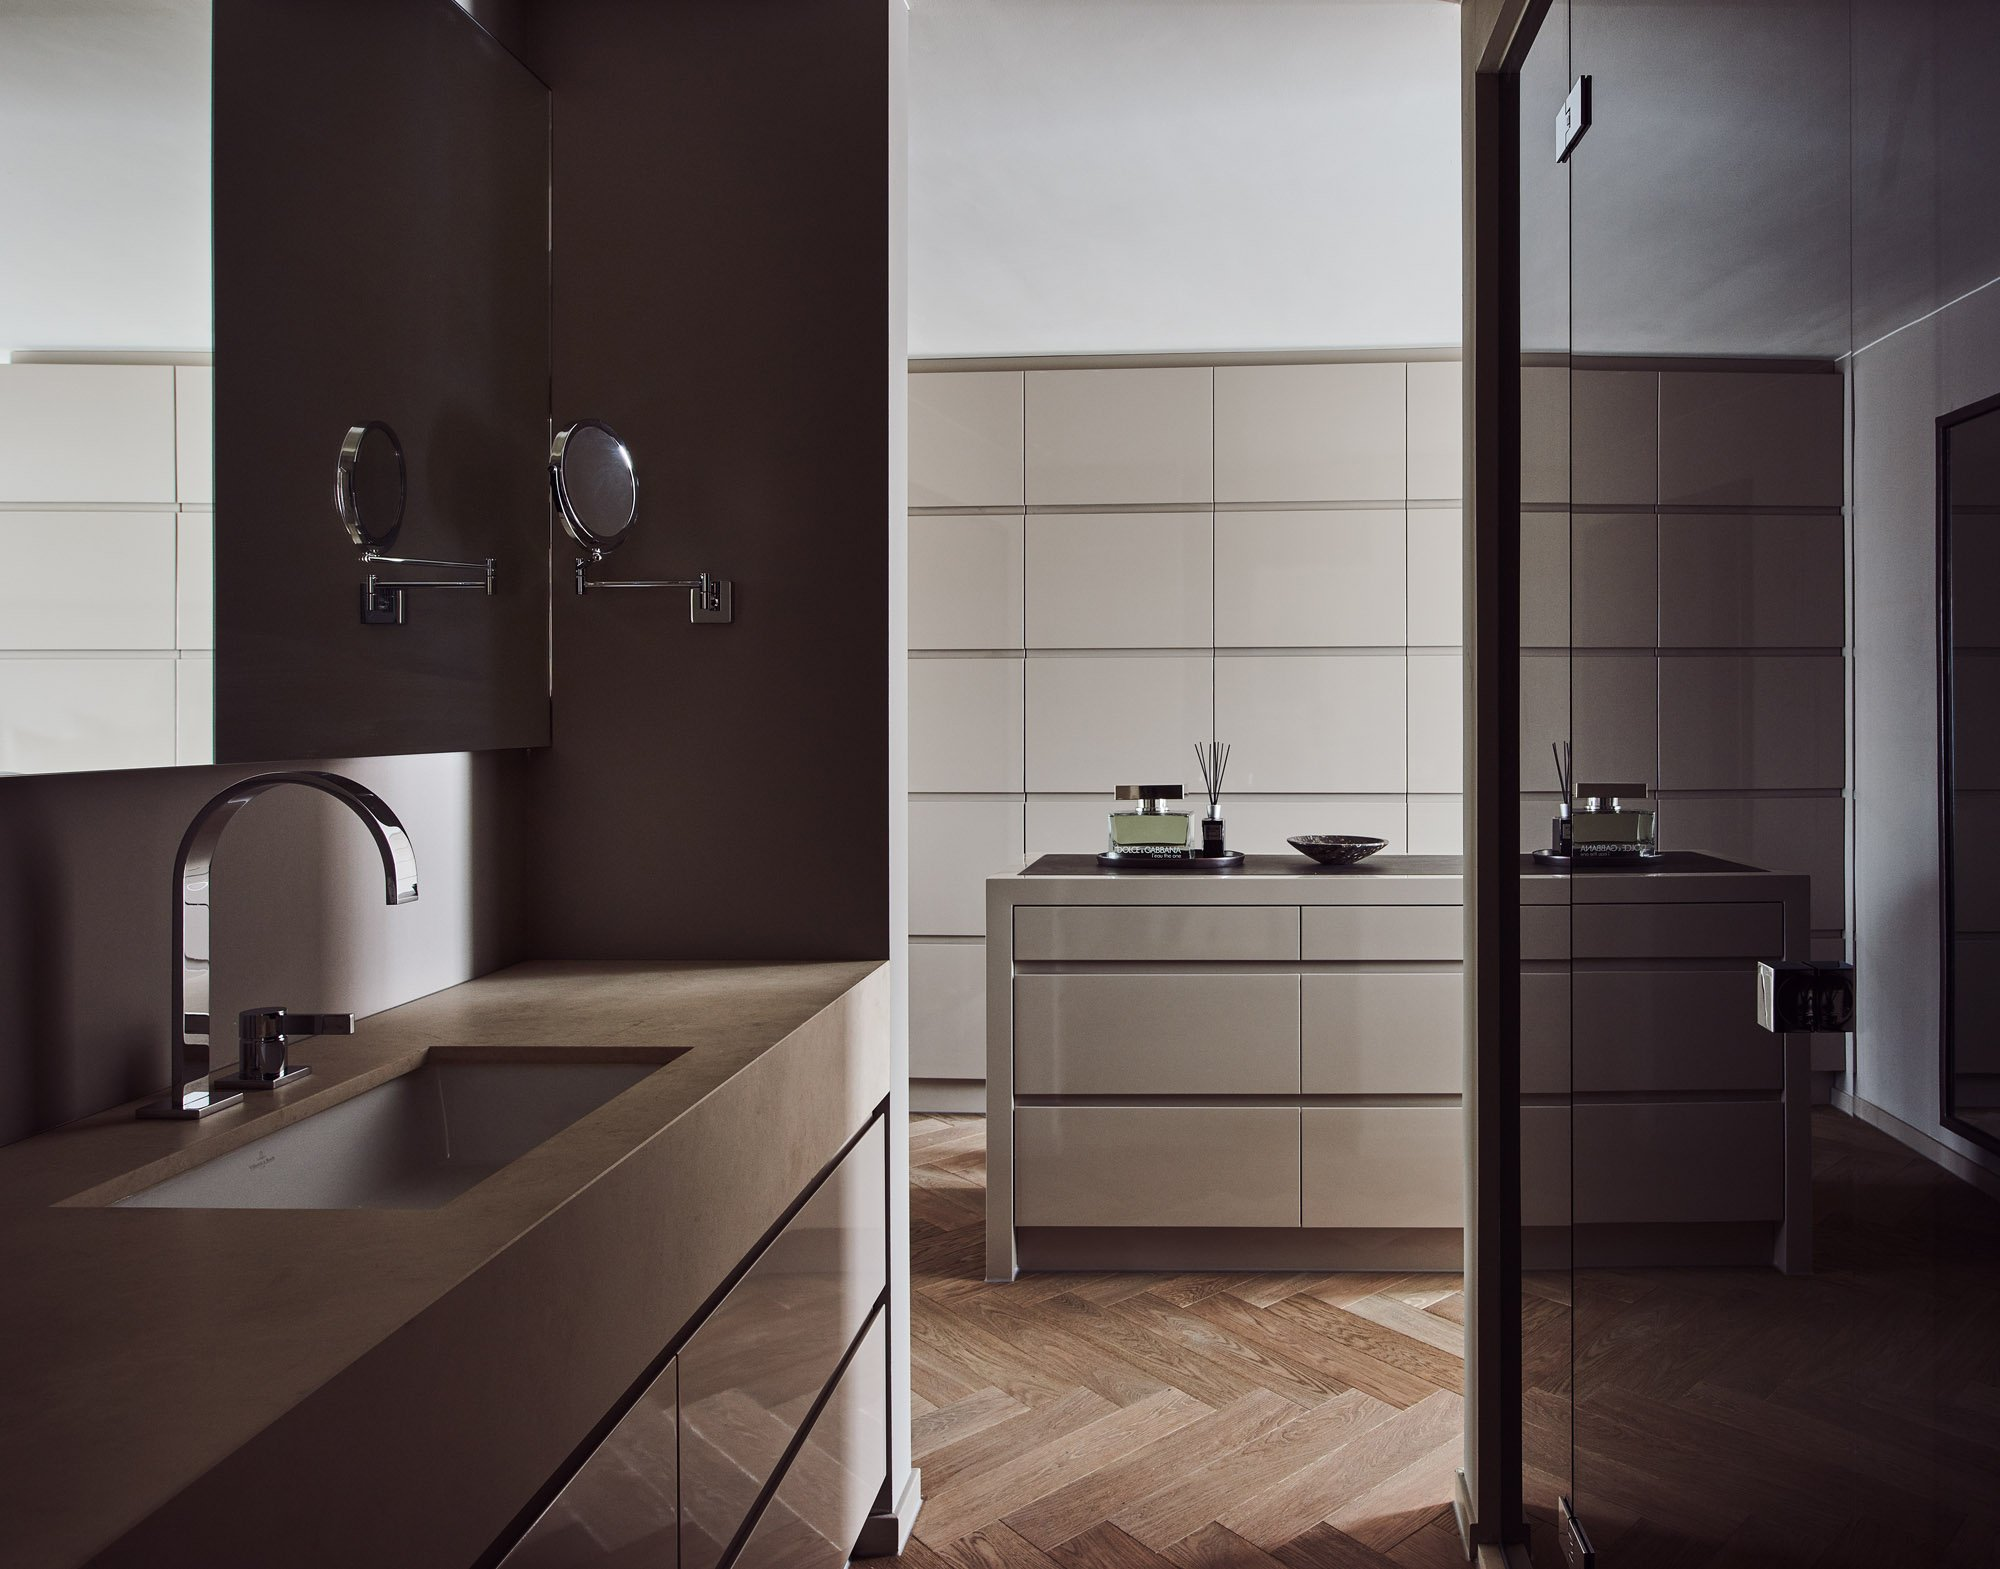 interior design beige brown bathroom luxury details